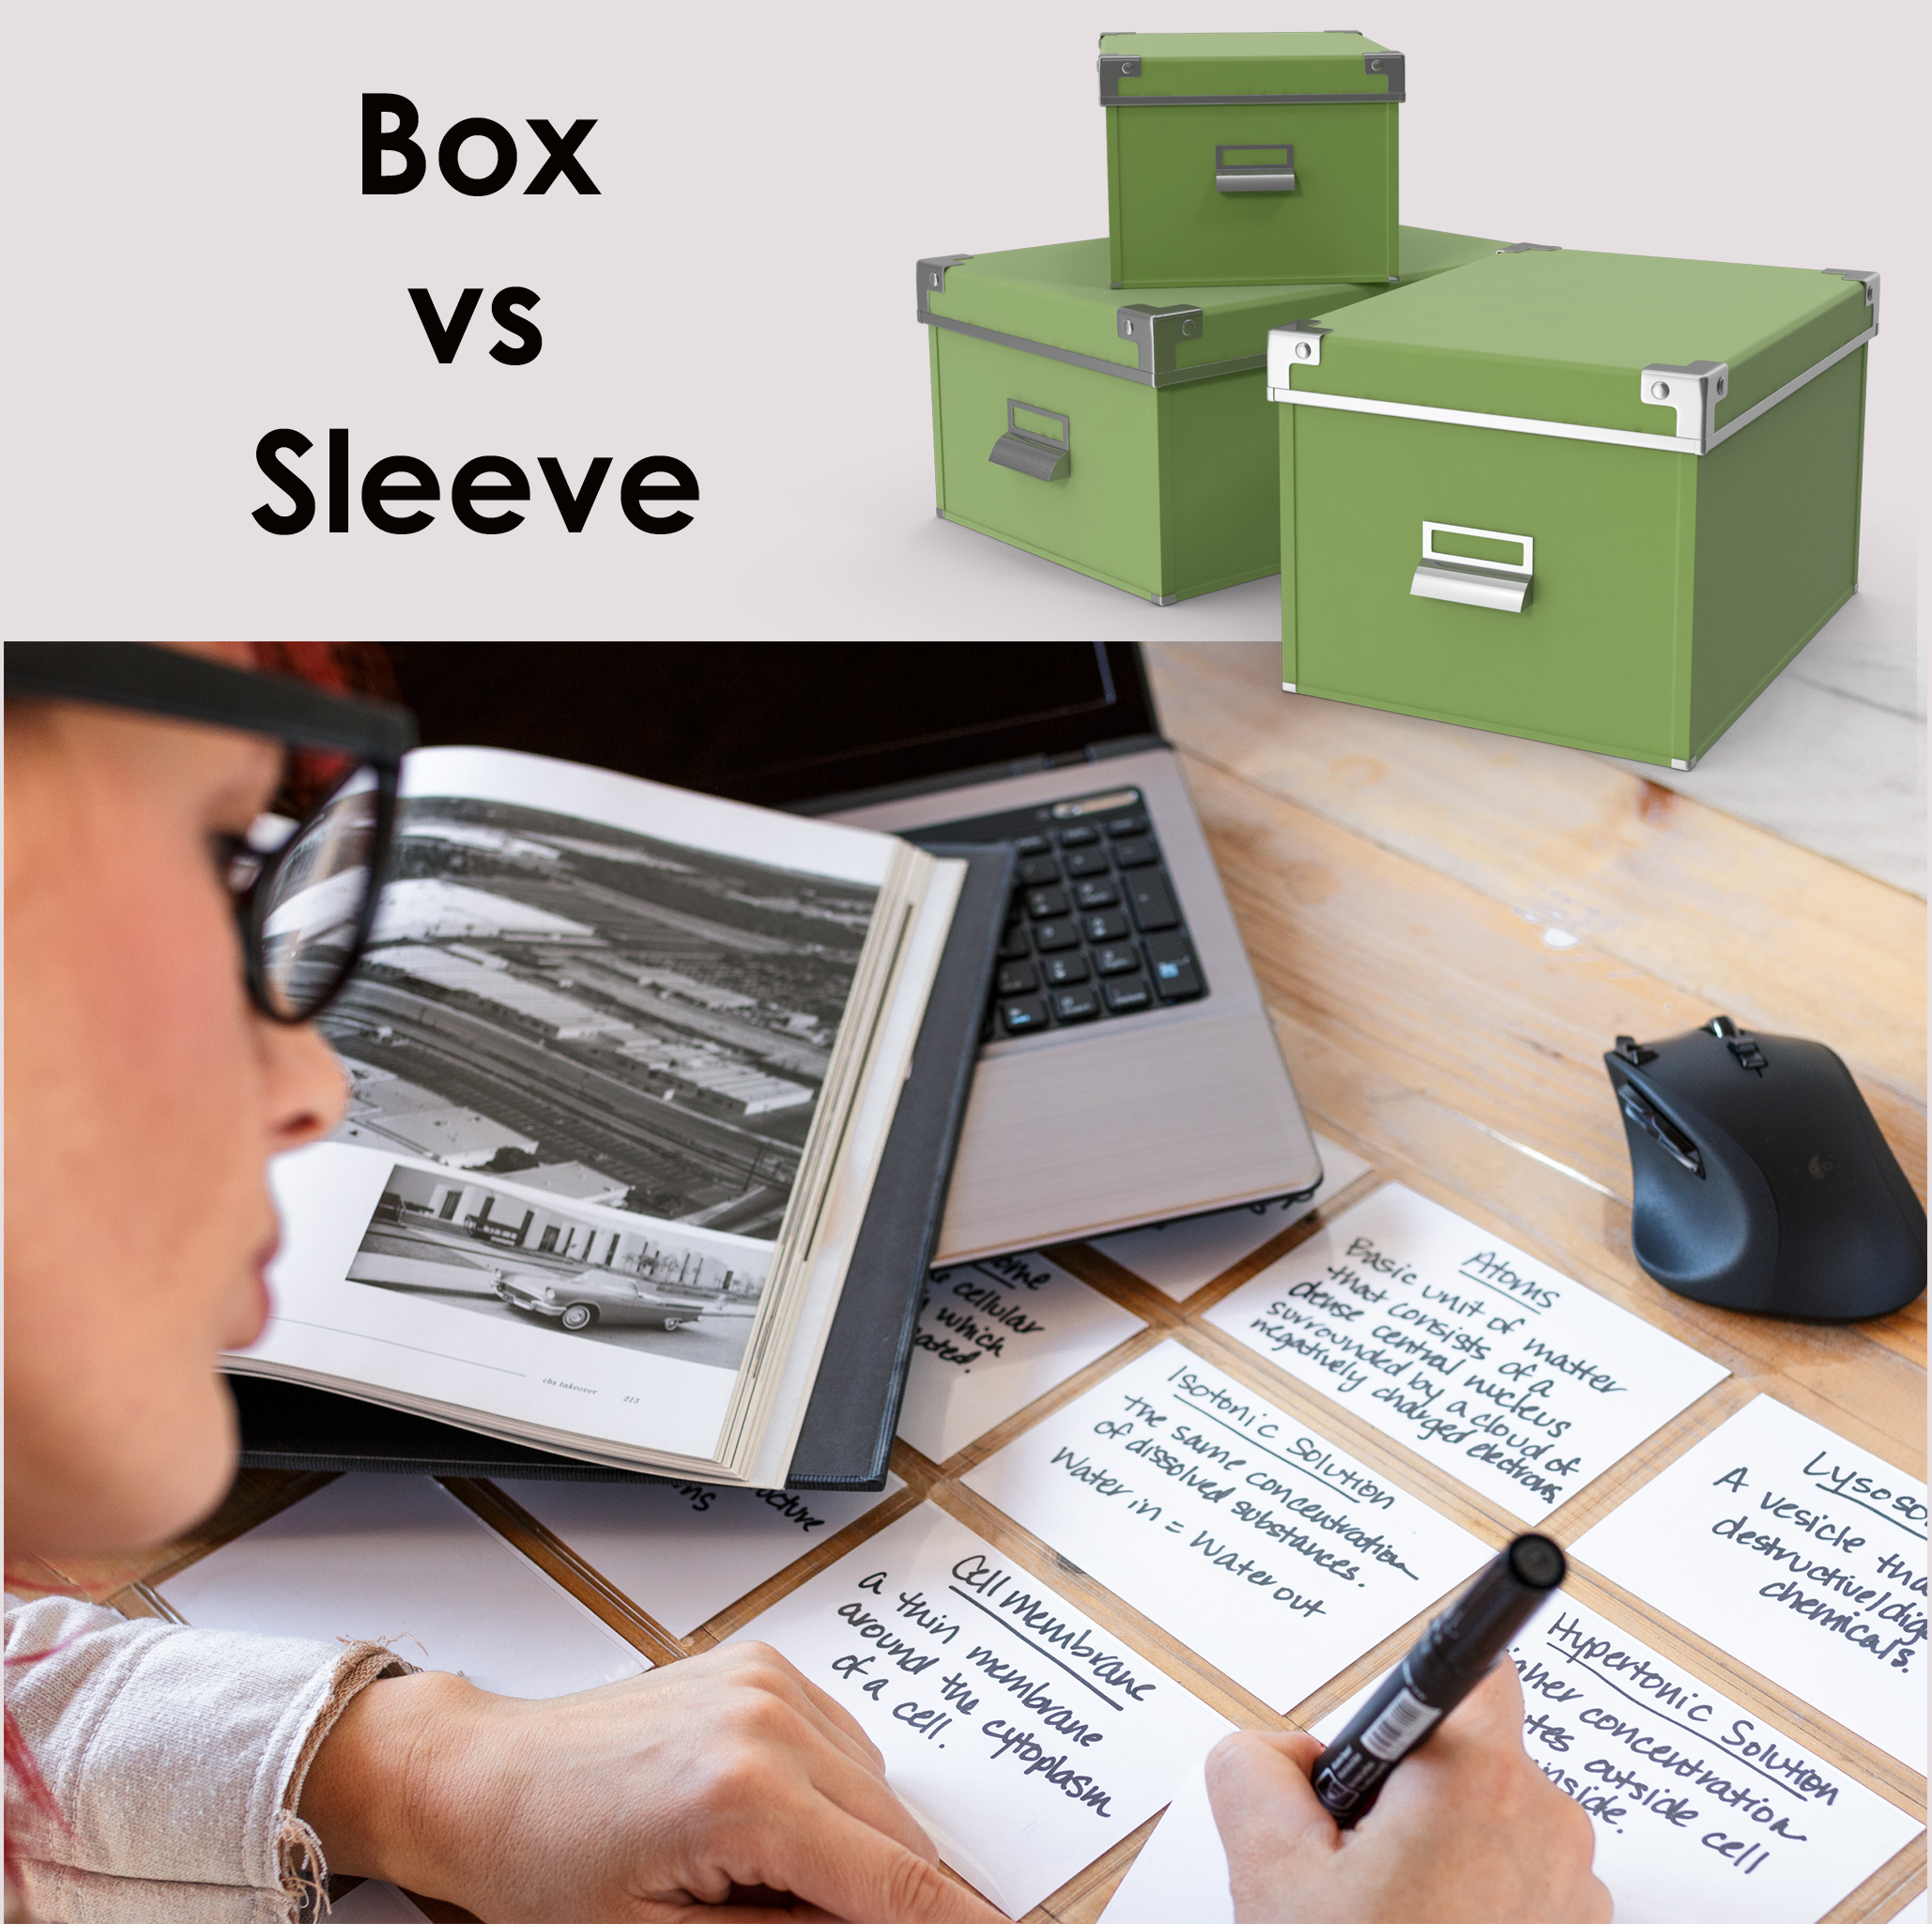 Index card box vs Index card sleeve